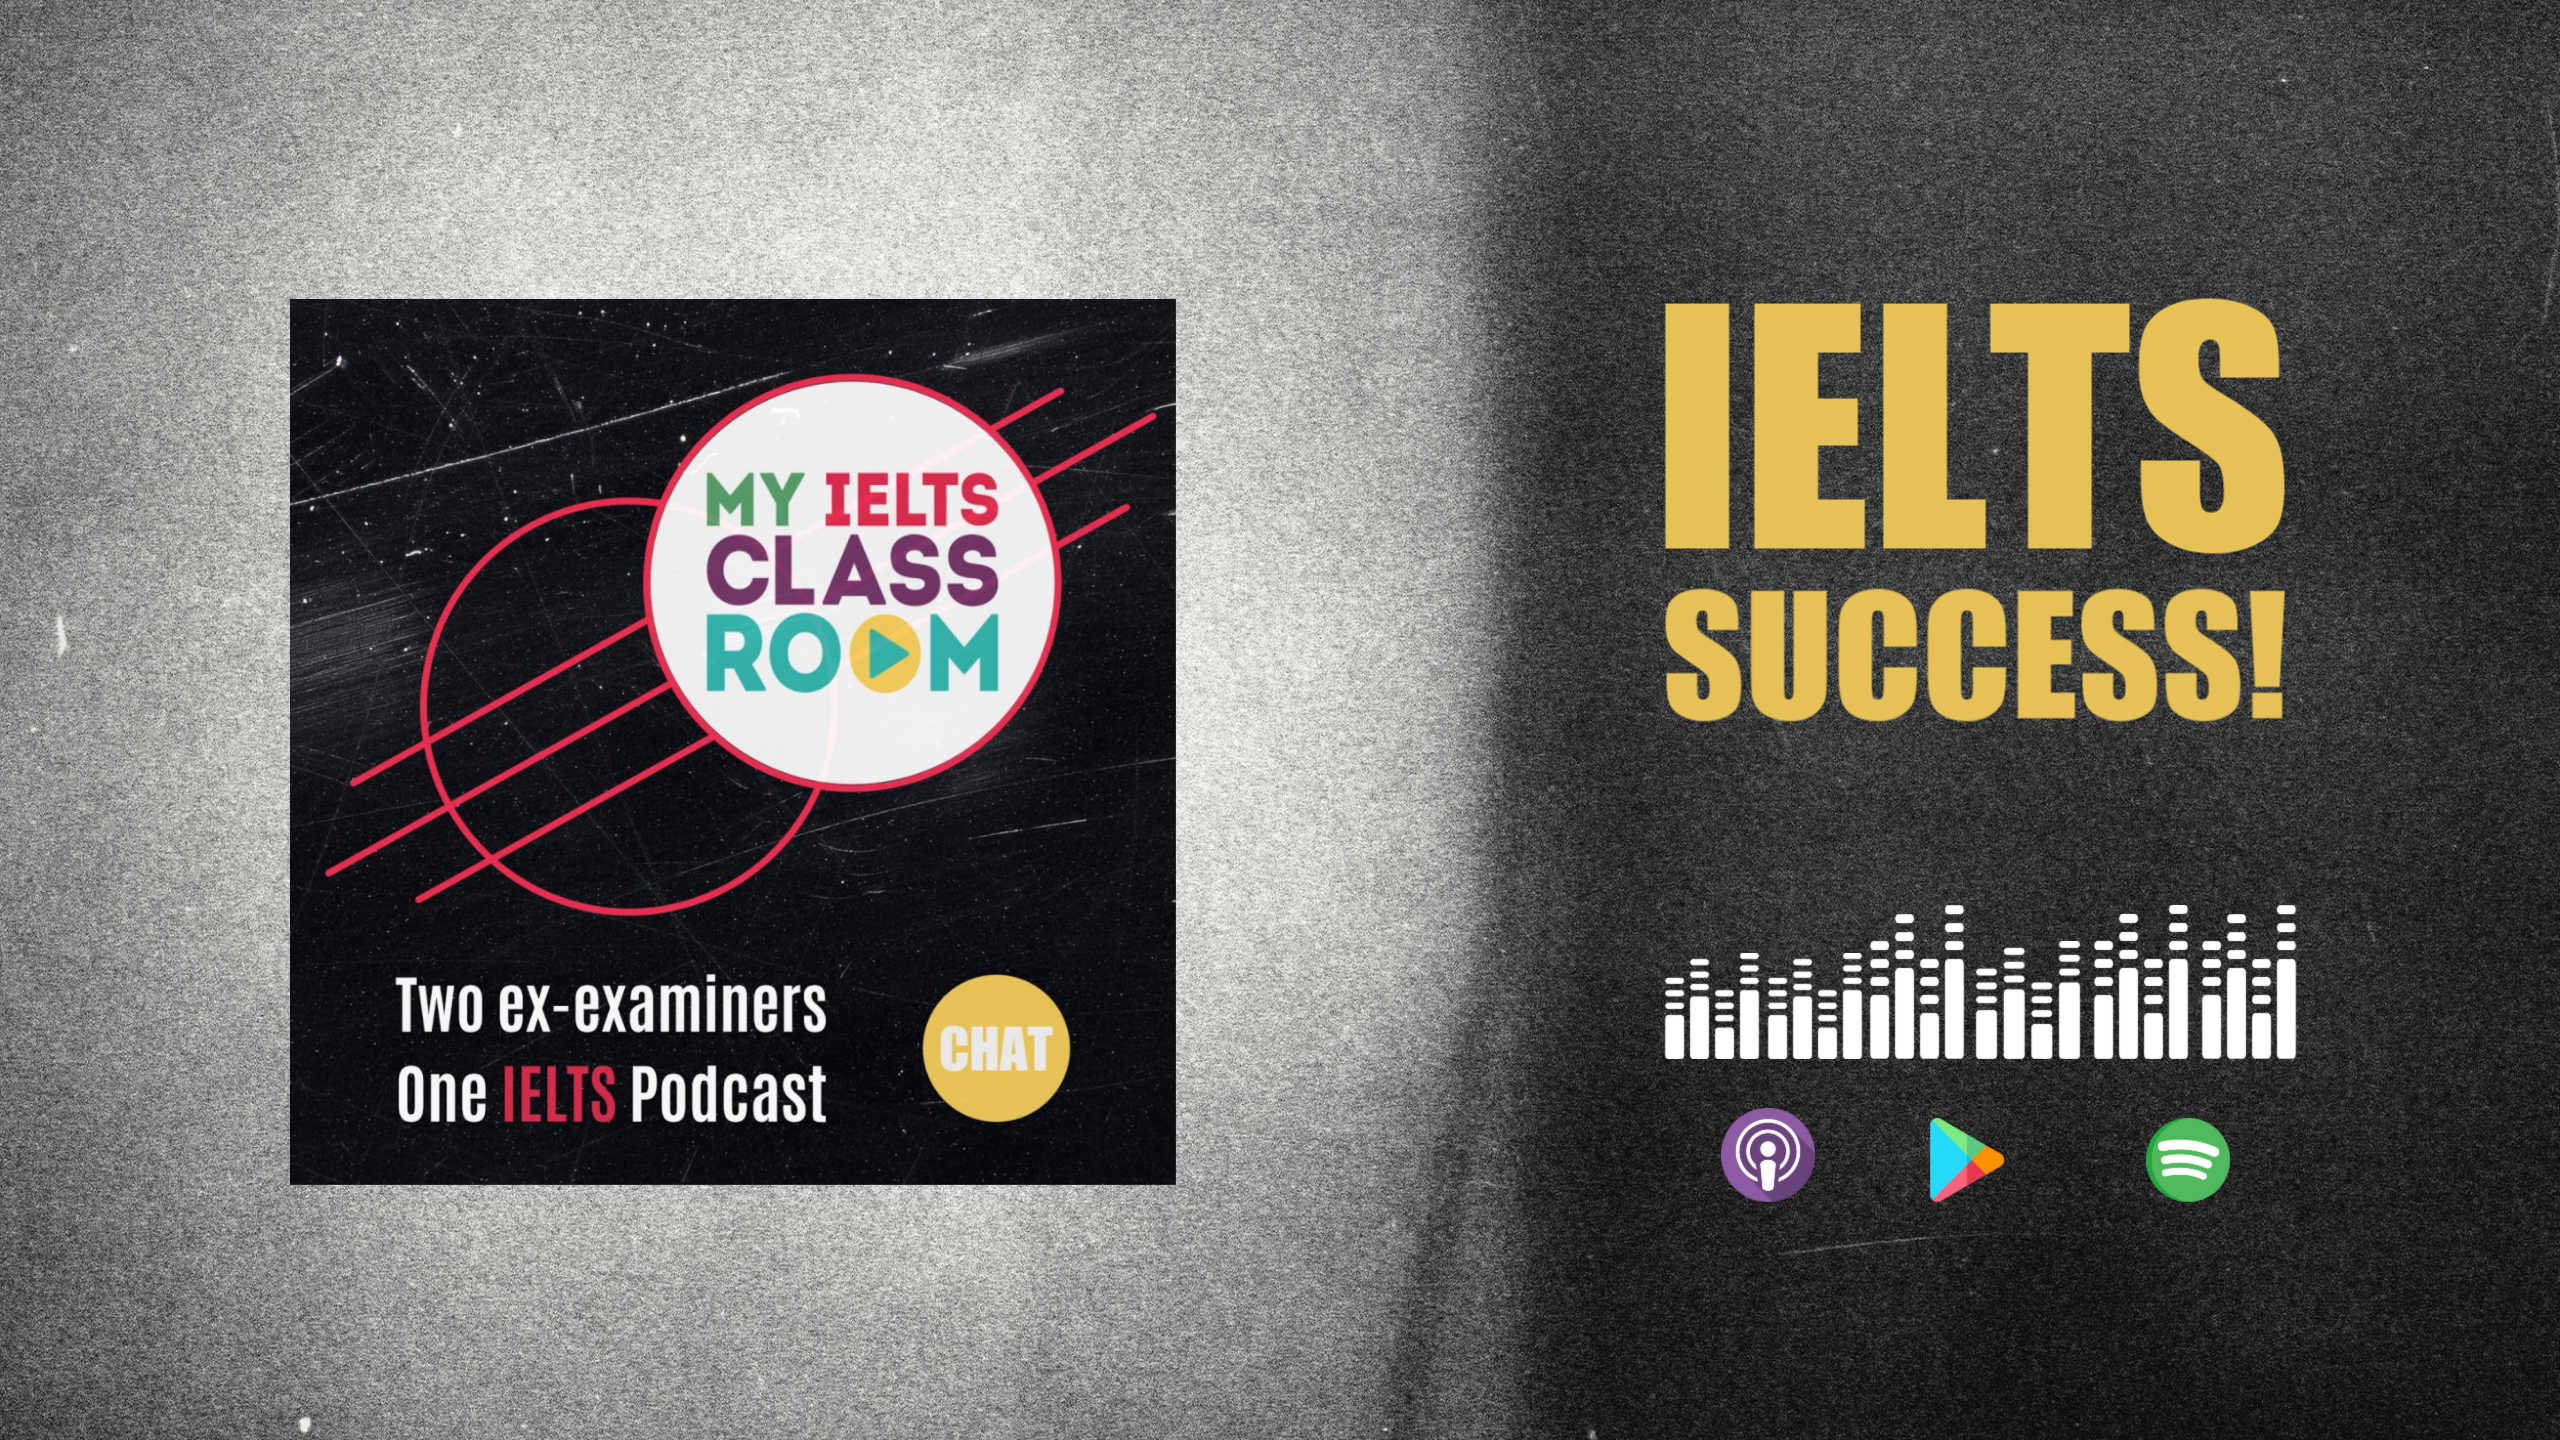 A podcast front cover that says The IELTS Student Success